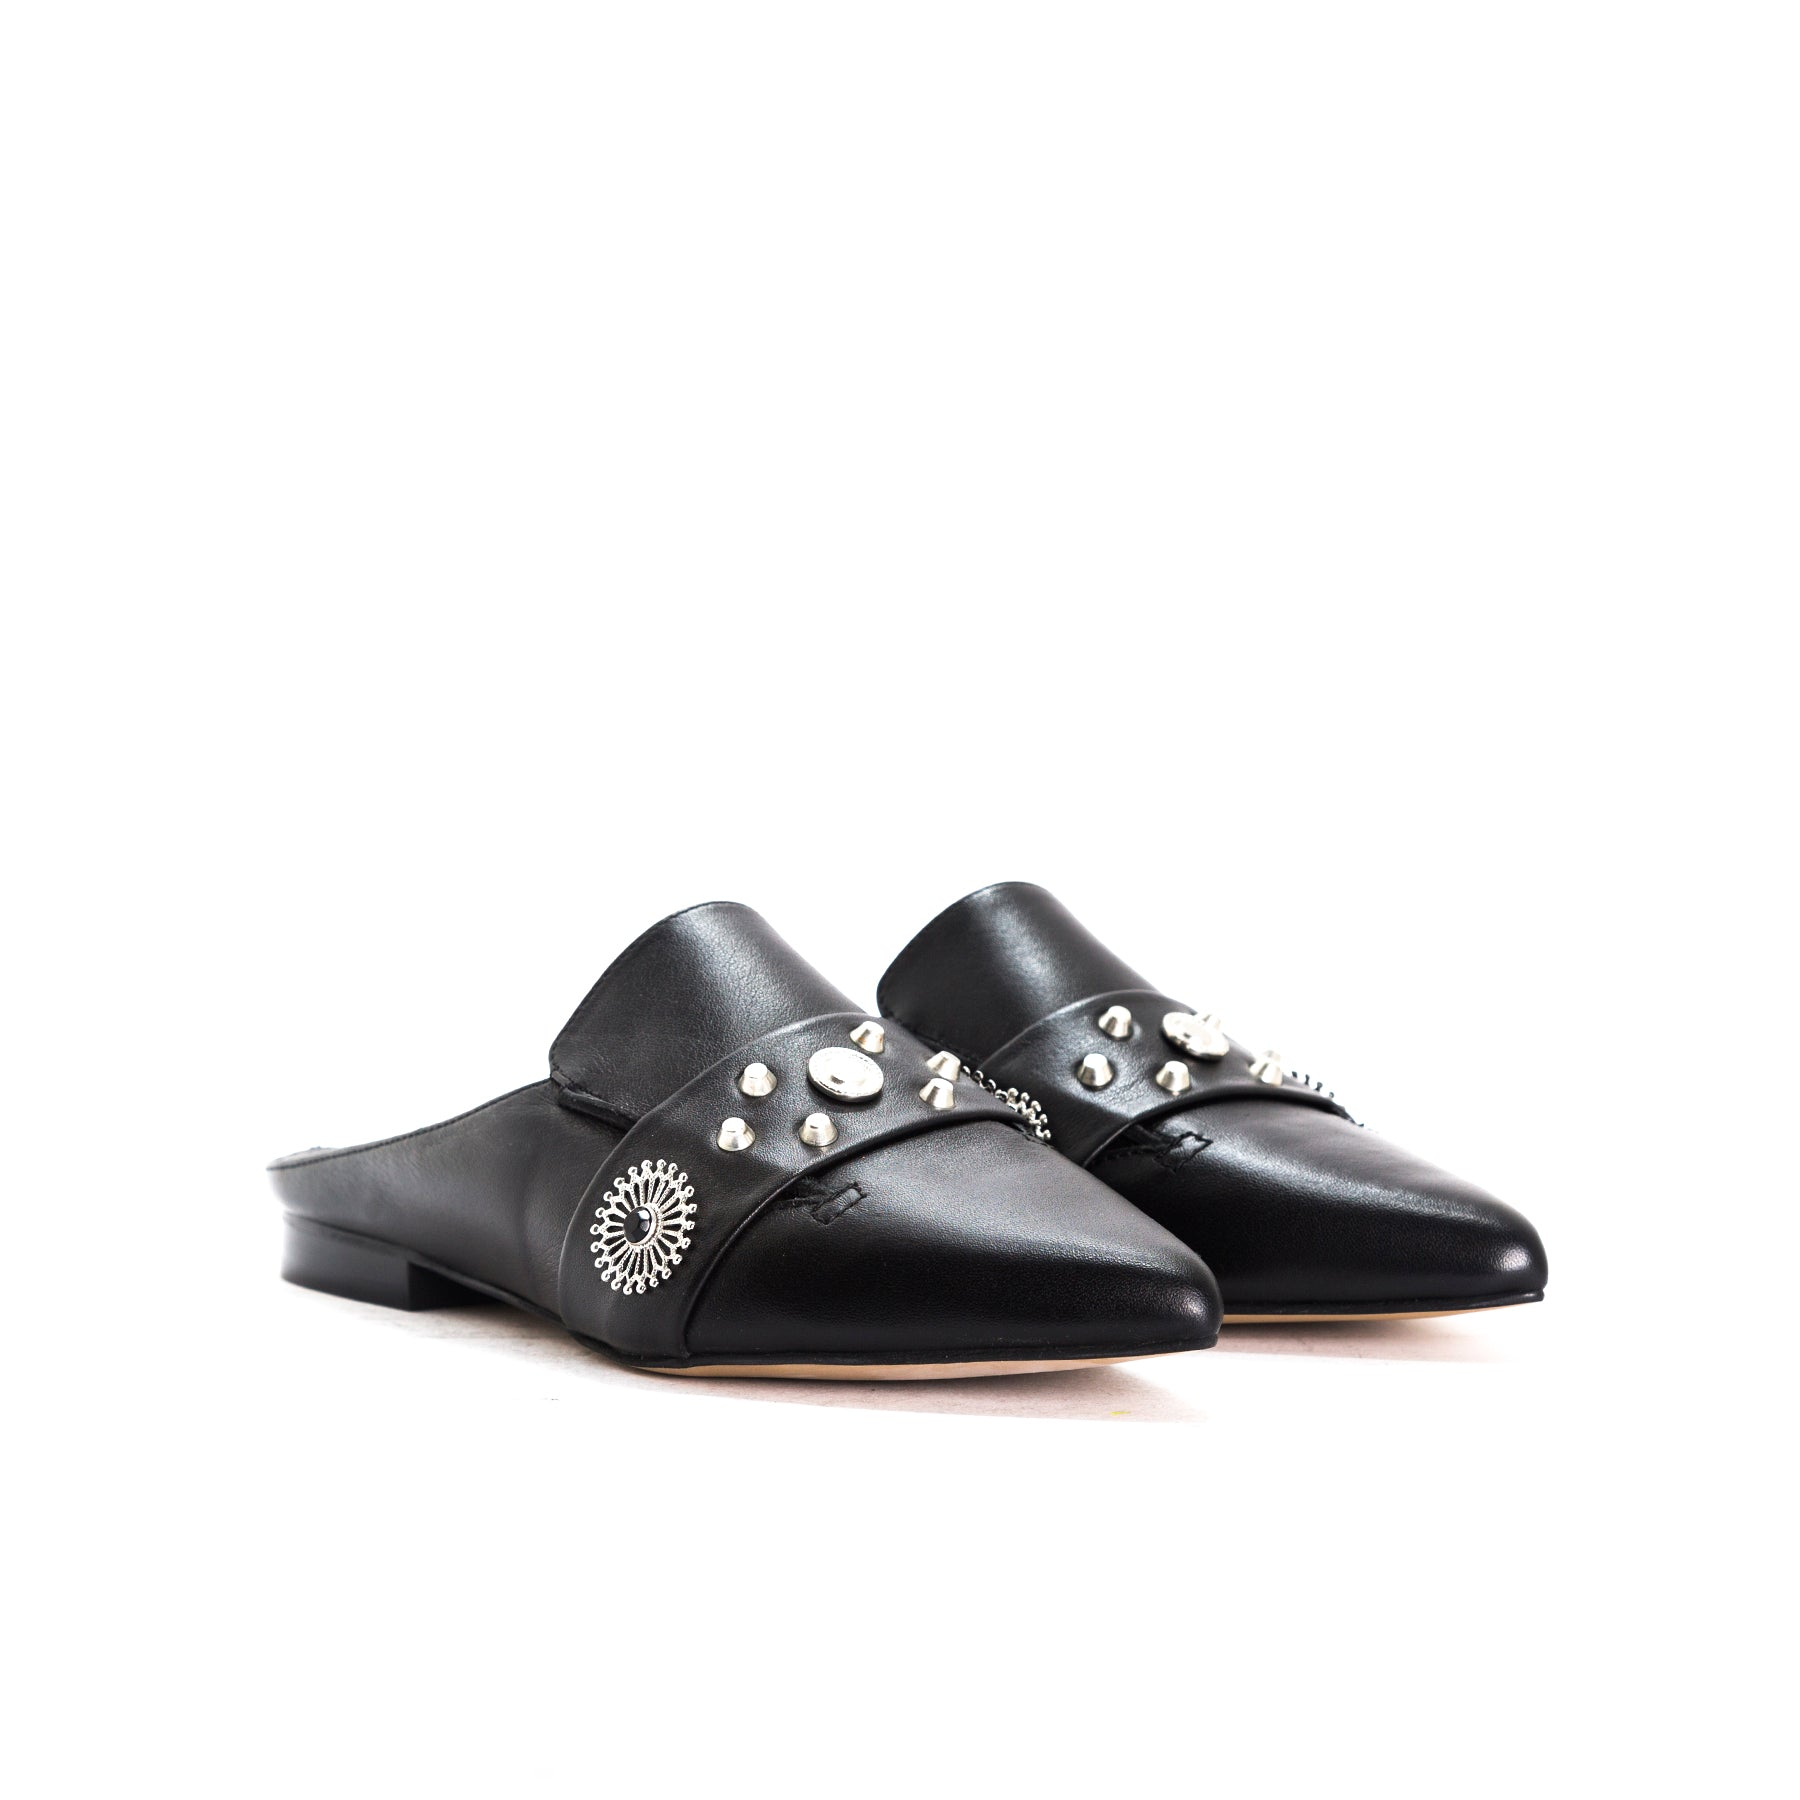 Falete Black Leather Mules